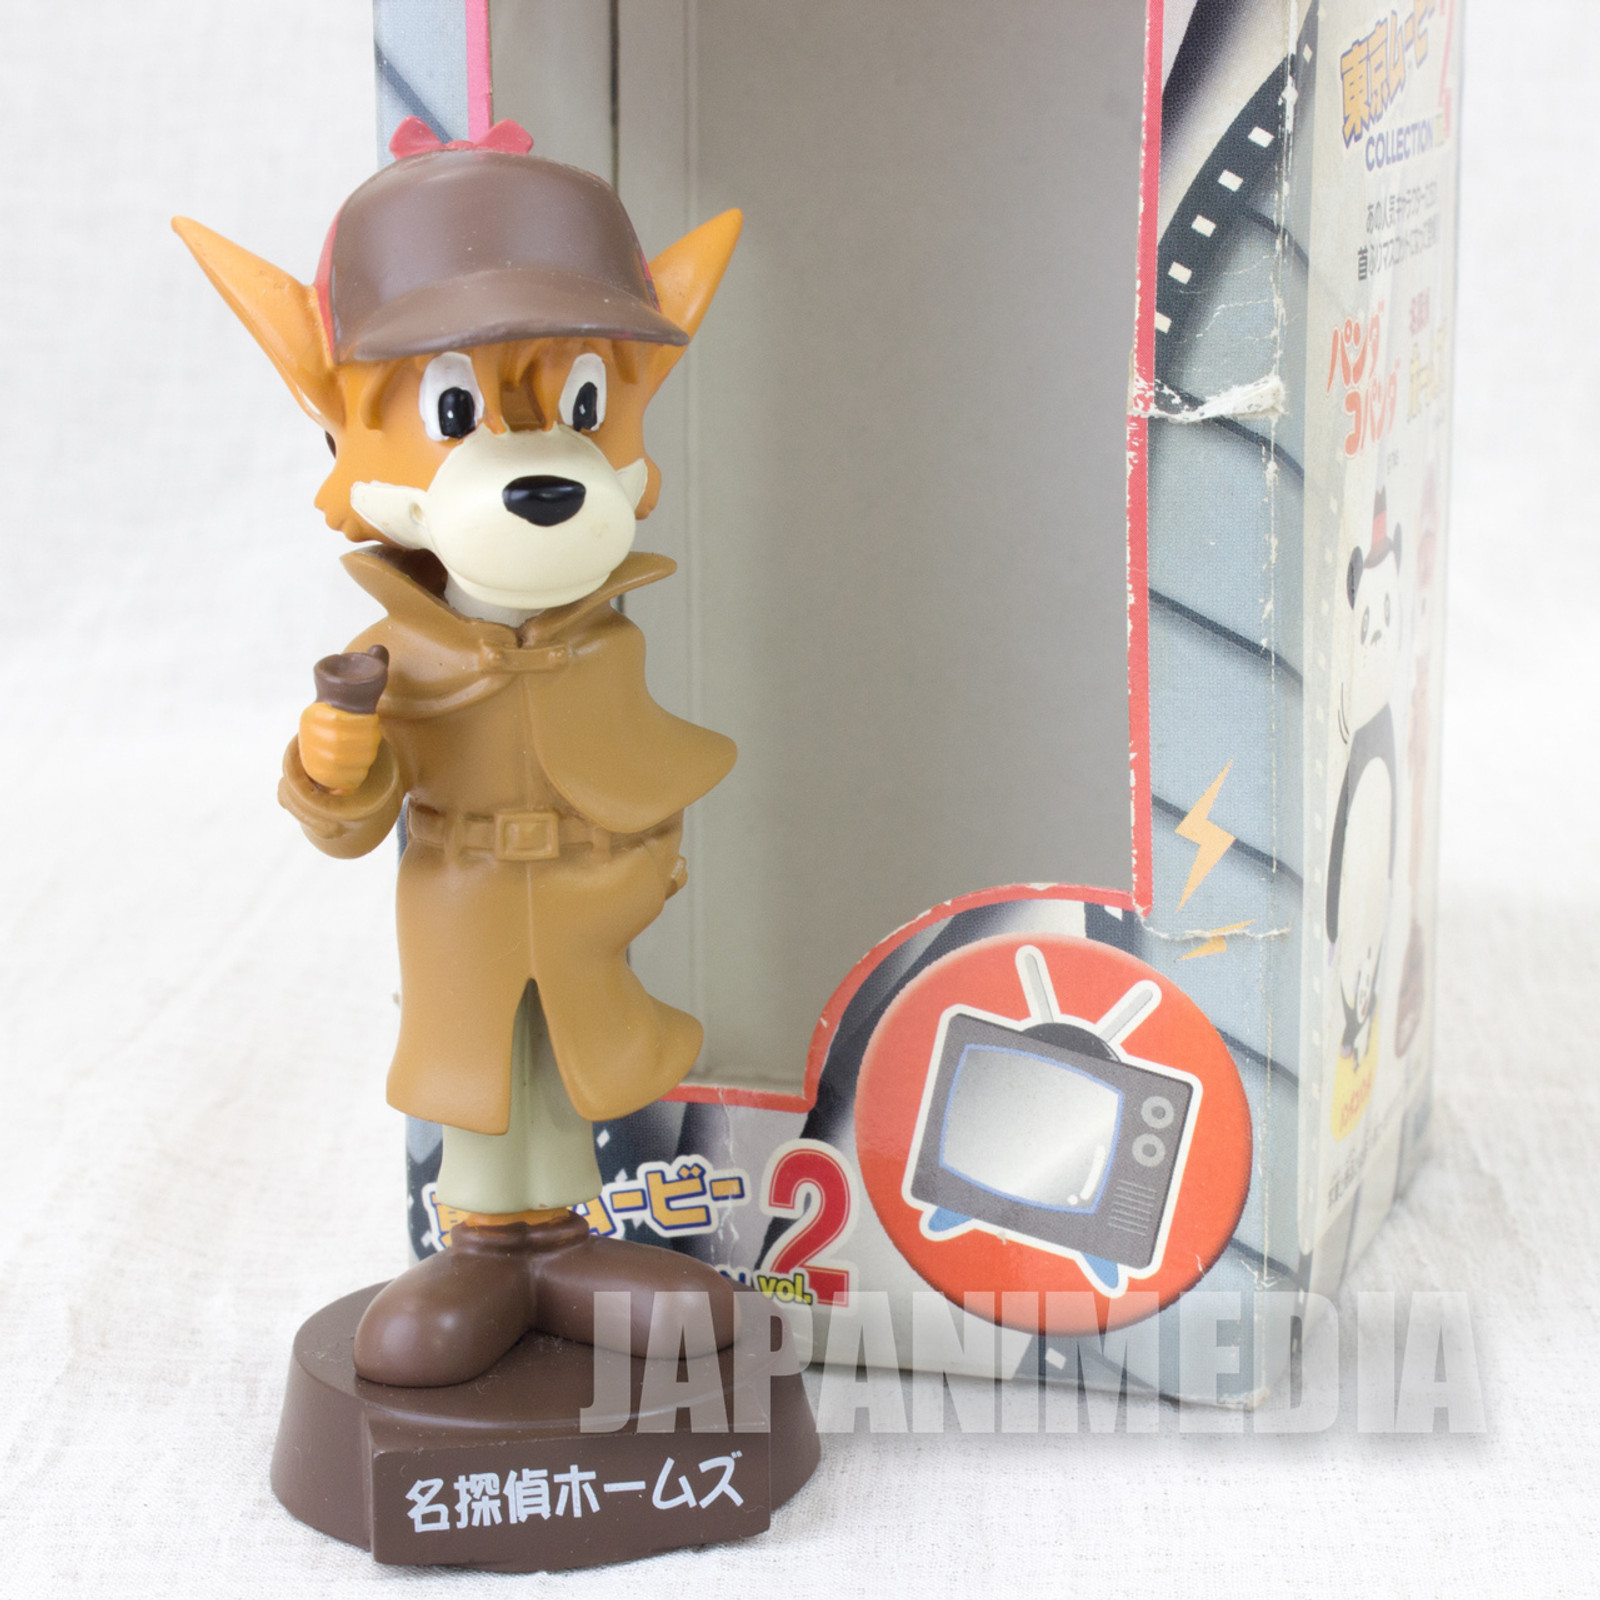 RARE!! The Detective Holmes Sherlock Holmes Bobblehead Figure Tokyo movie Collection vol.2 JAPAN ANIME